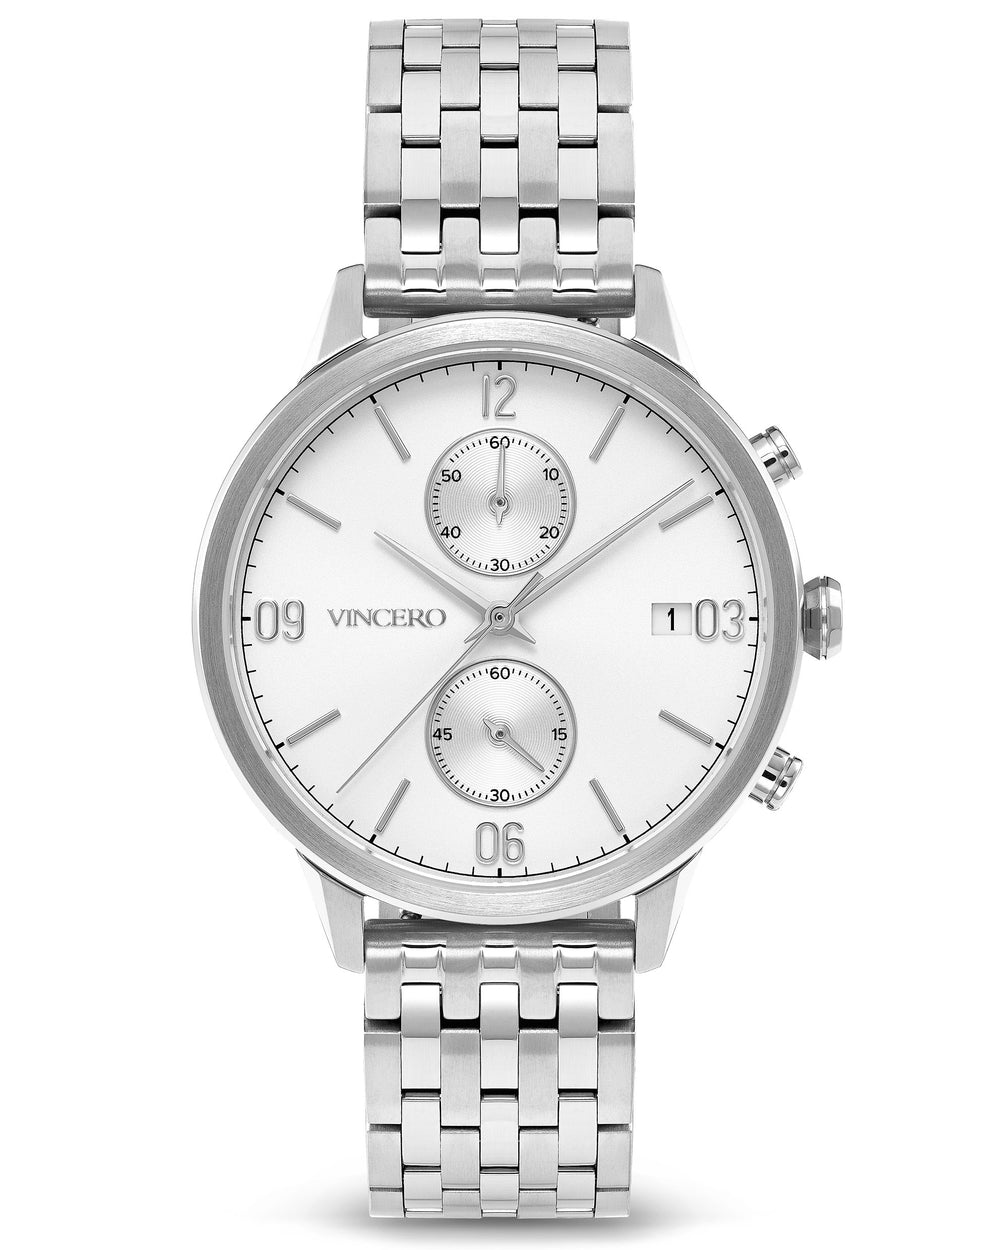 The Reign Silver 316L Stainless Steel Strap White Watch Face Silver Case Clasp Silver Accents